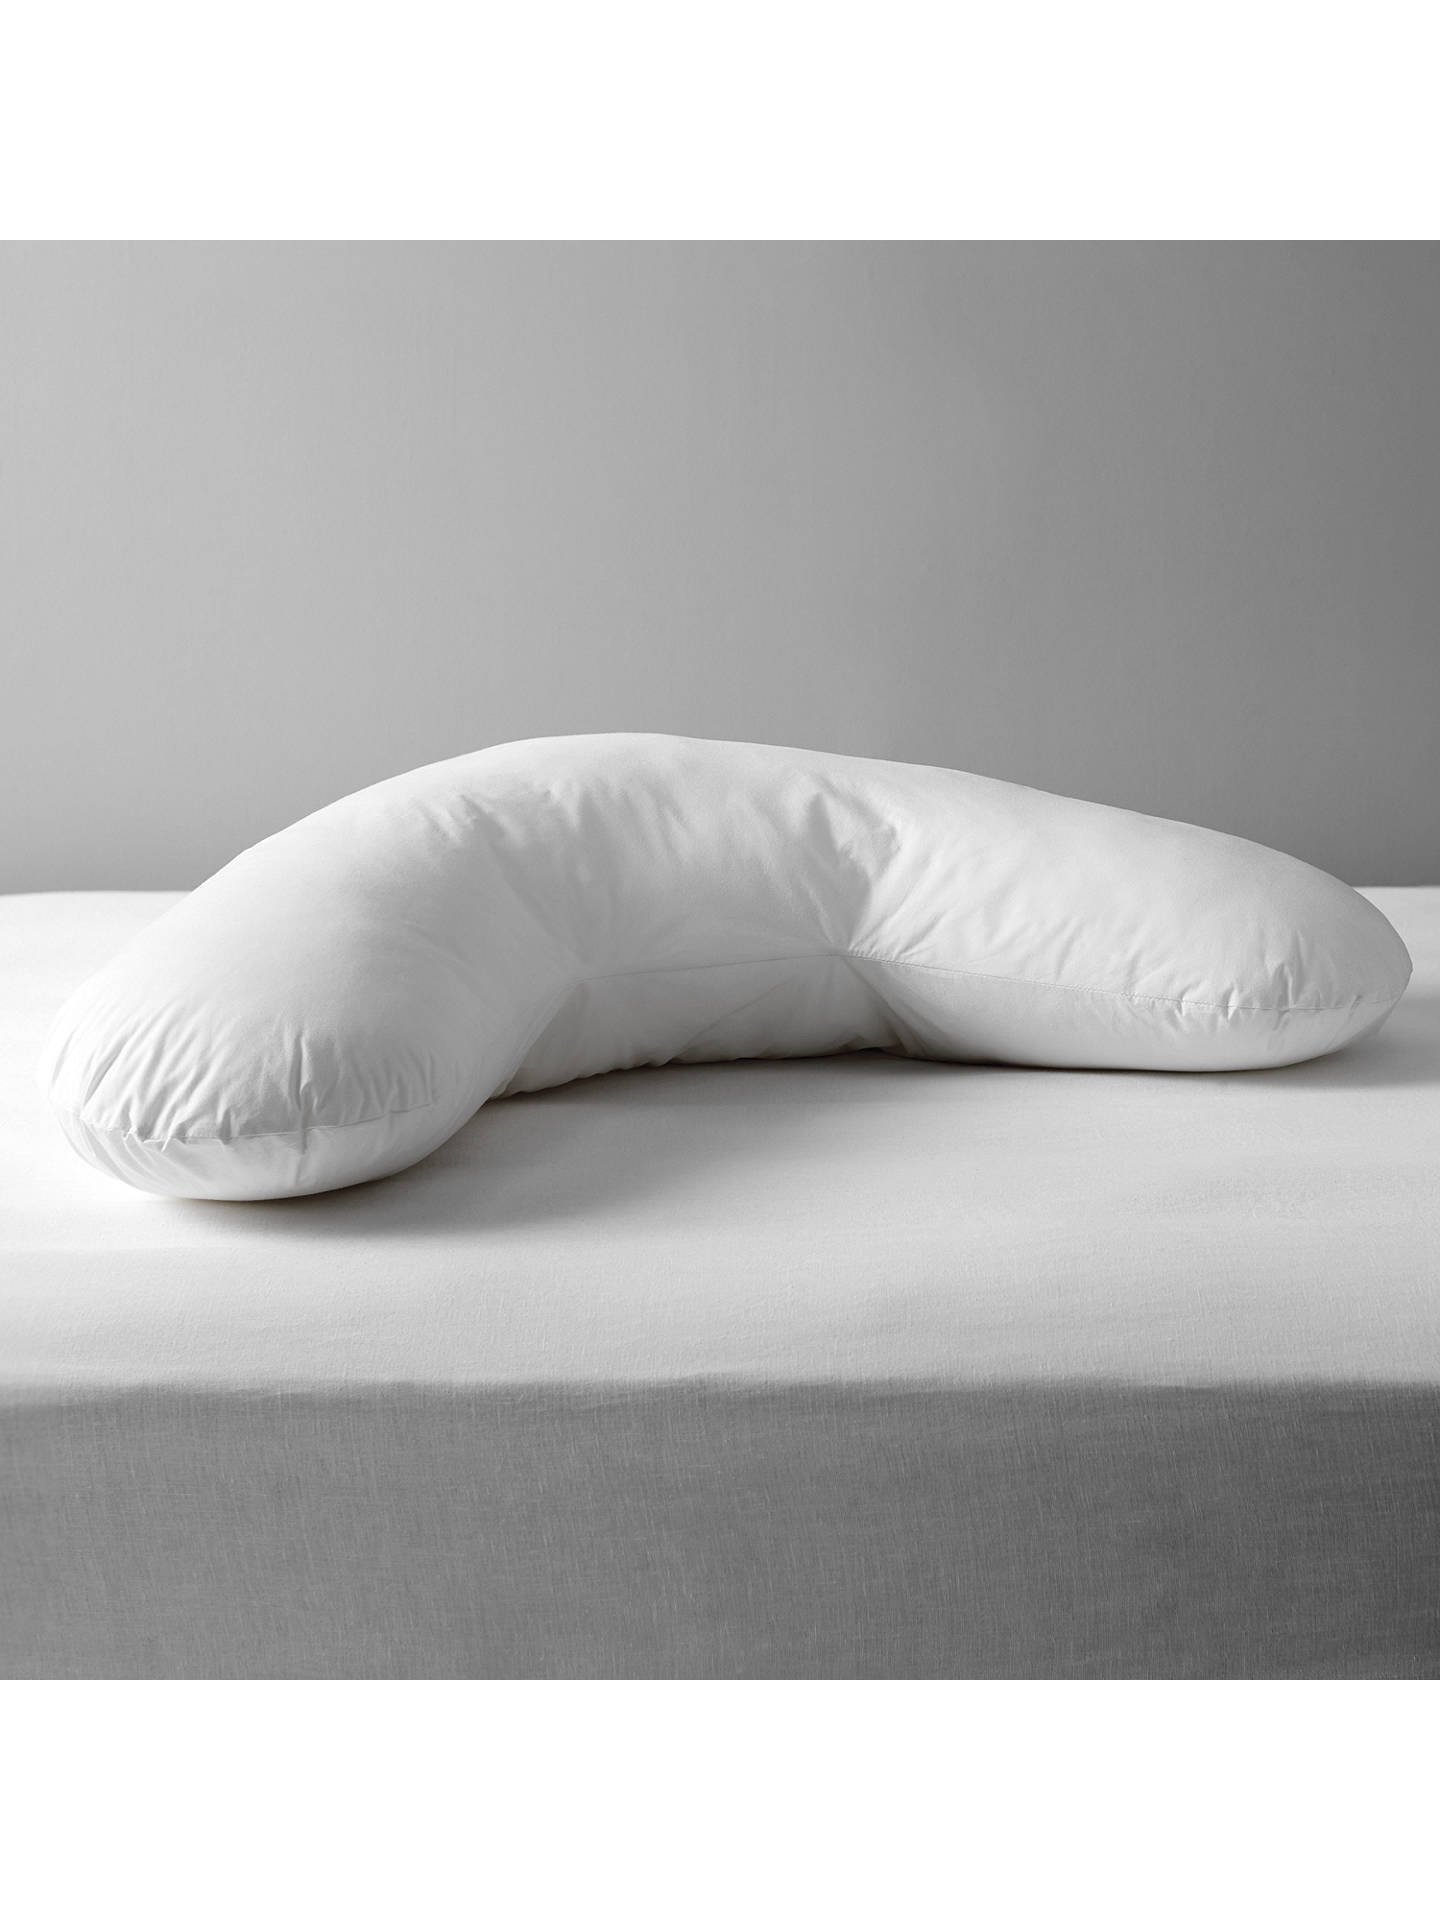 Buy John Lewis & Partners Specialist Synthetic V-Shaped Support Pillow Online at johnlewis.com